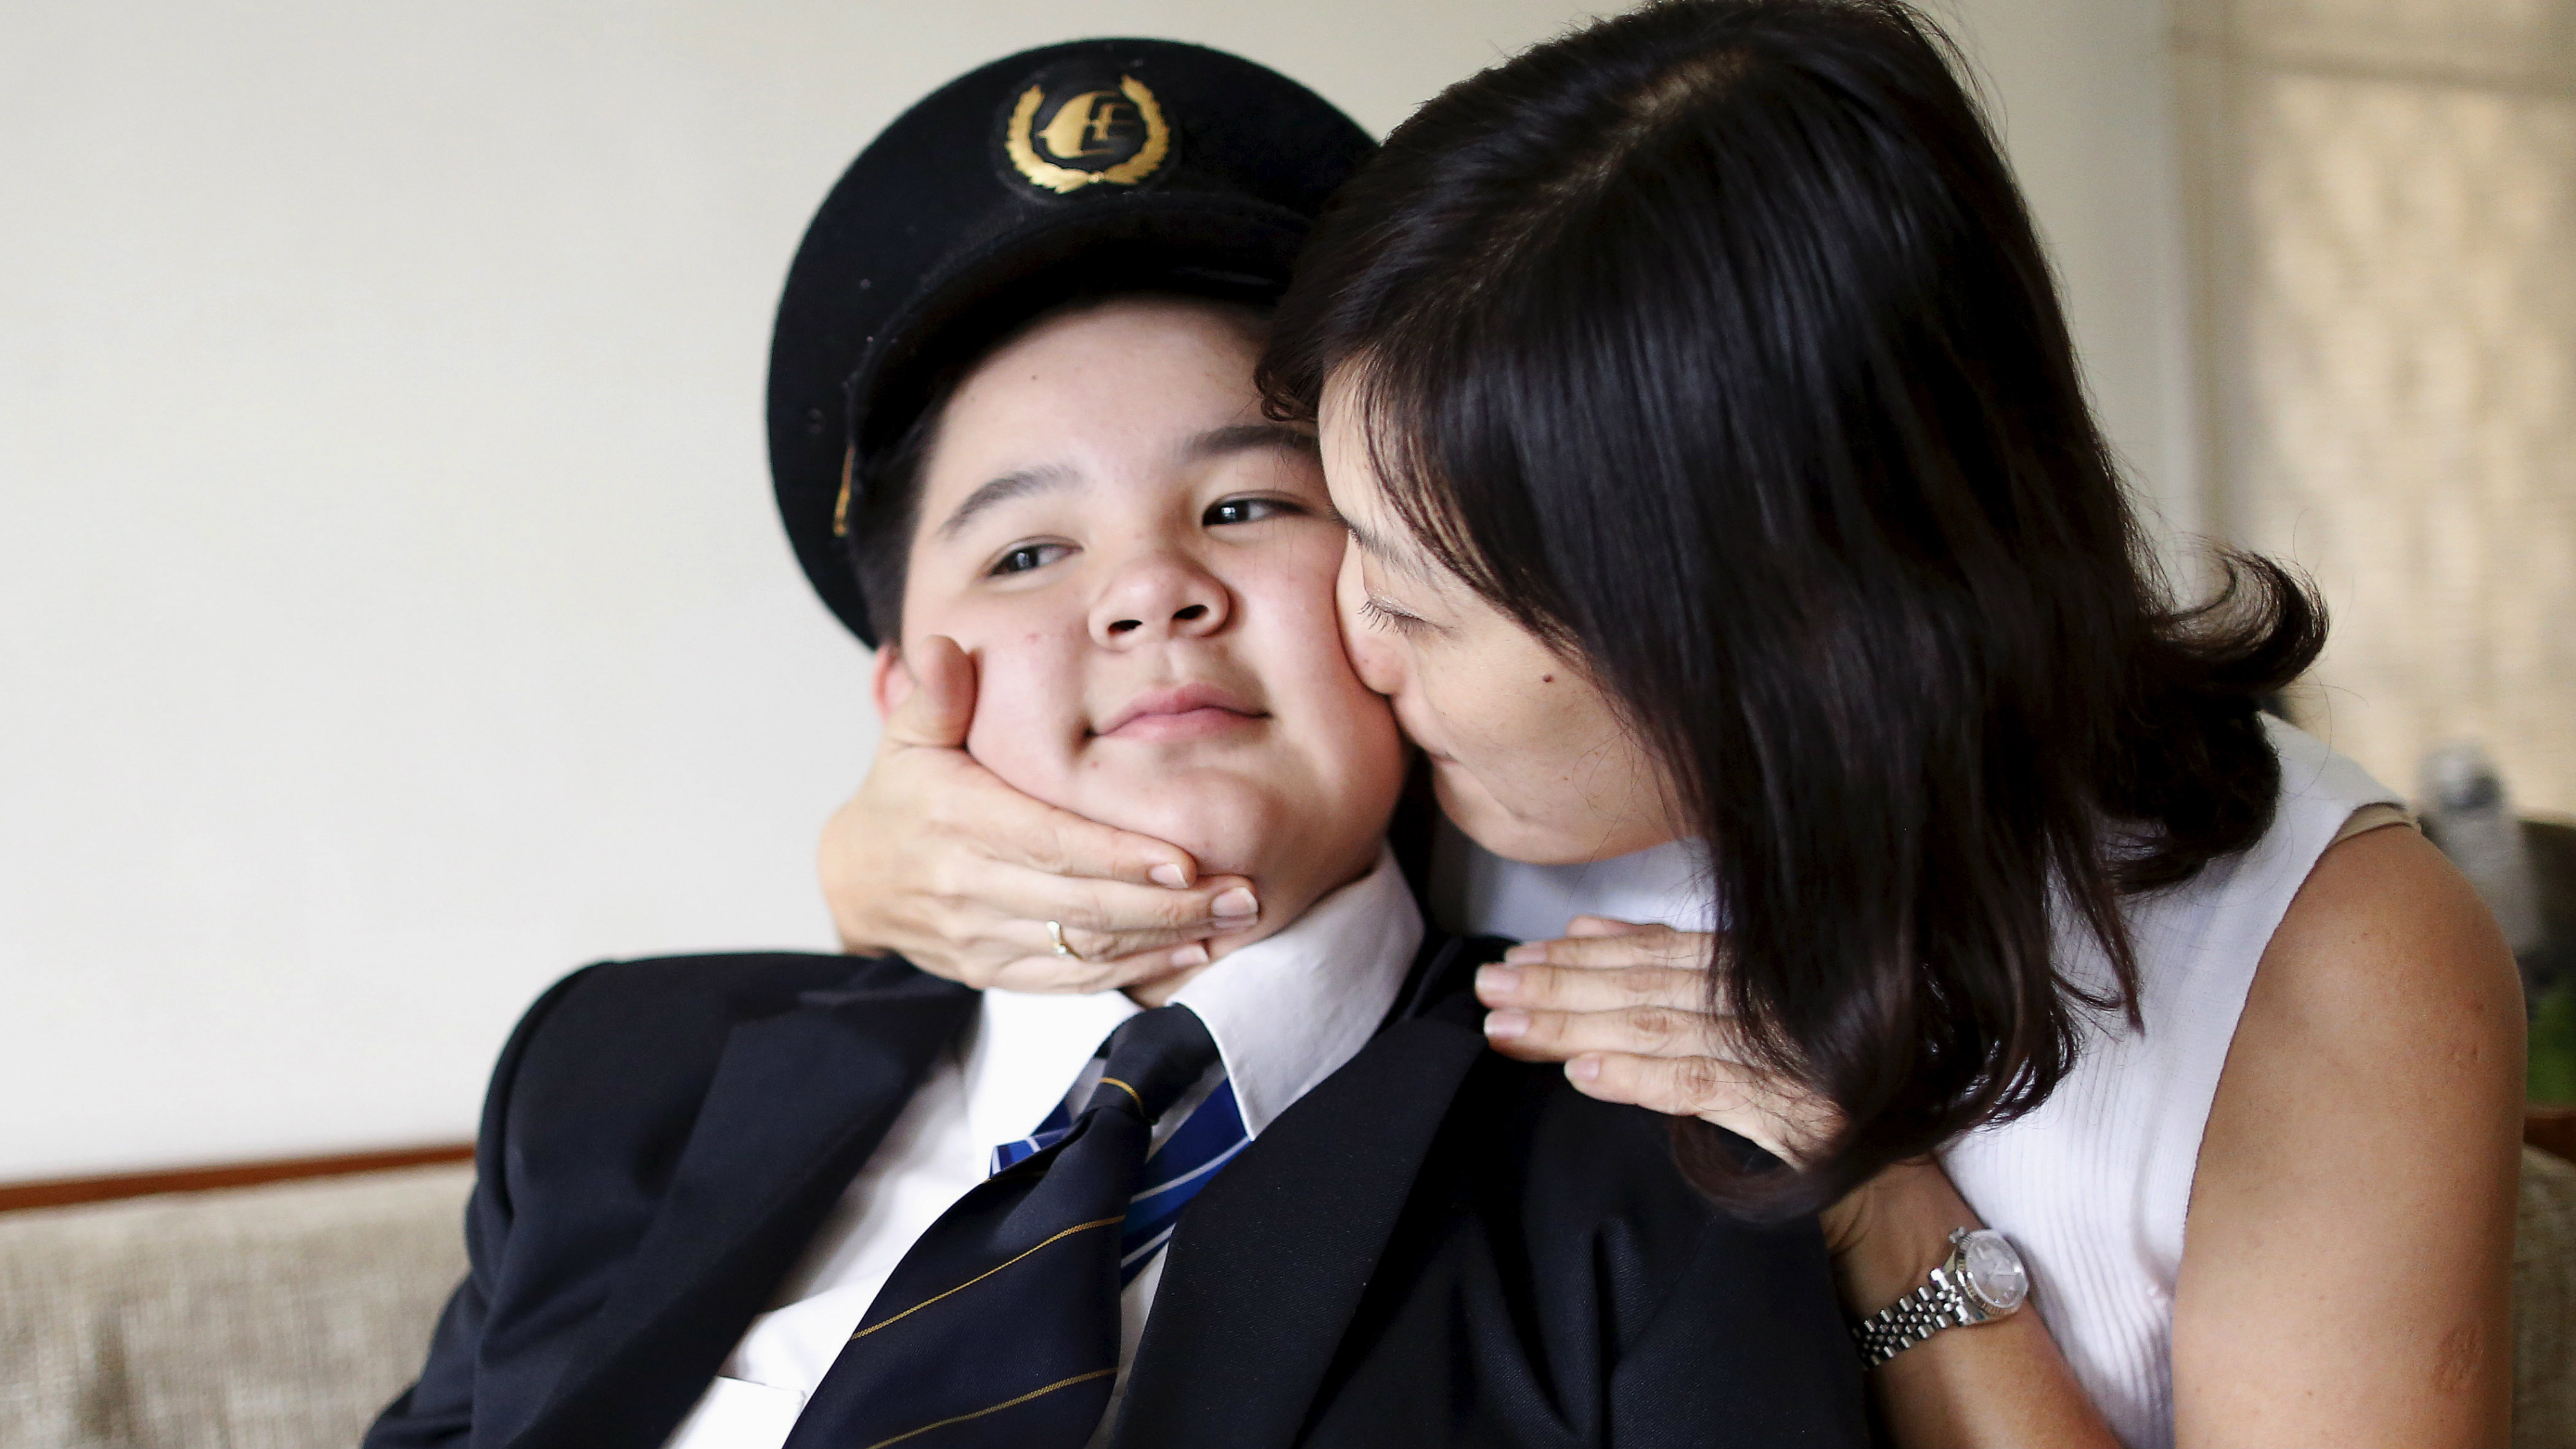 Ivy Loi, wife of MH17 co-pilot Eugene Choo, kisses her son Scott Choo, 12, as he poses for a photograph in his father's uniform at home in Seremban, near Kuala Lumpur, Malaysia, October 13, 2015. Malaysia Airlines Flight 17 was shot down over eastern Ukraine by a Russian-made Buk missile, the Dutch Safety Board concluded on Tuesday in its final report on the July 2014 crash that killed all 298 people on board. REUTERS/Olivia Harris